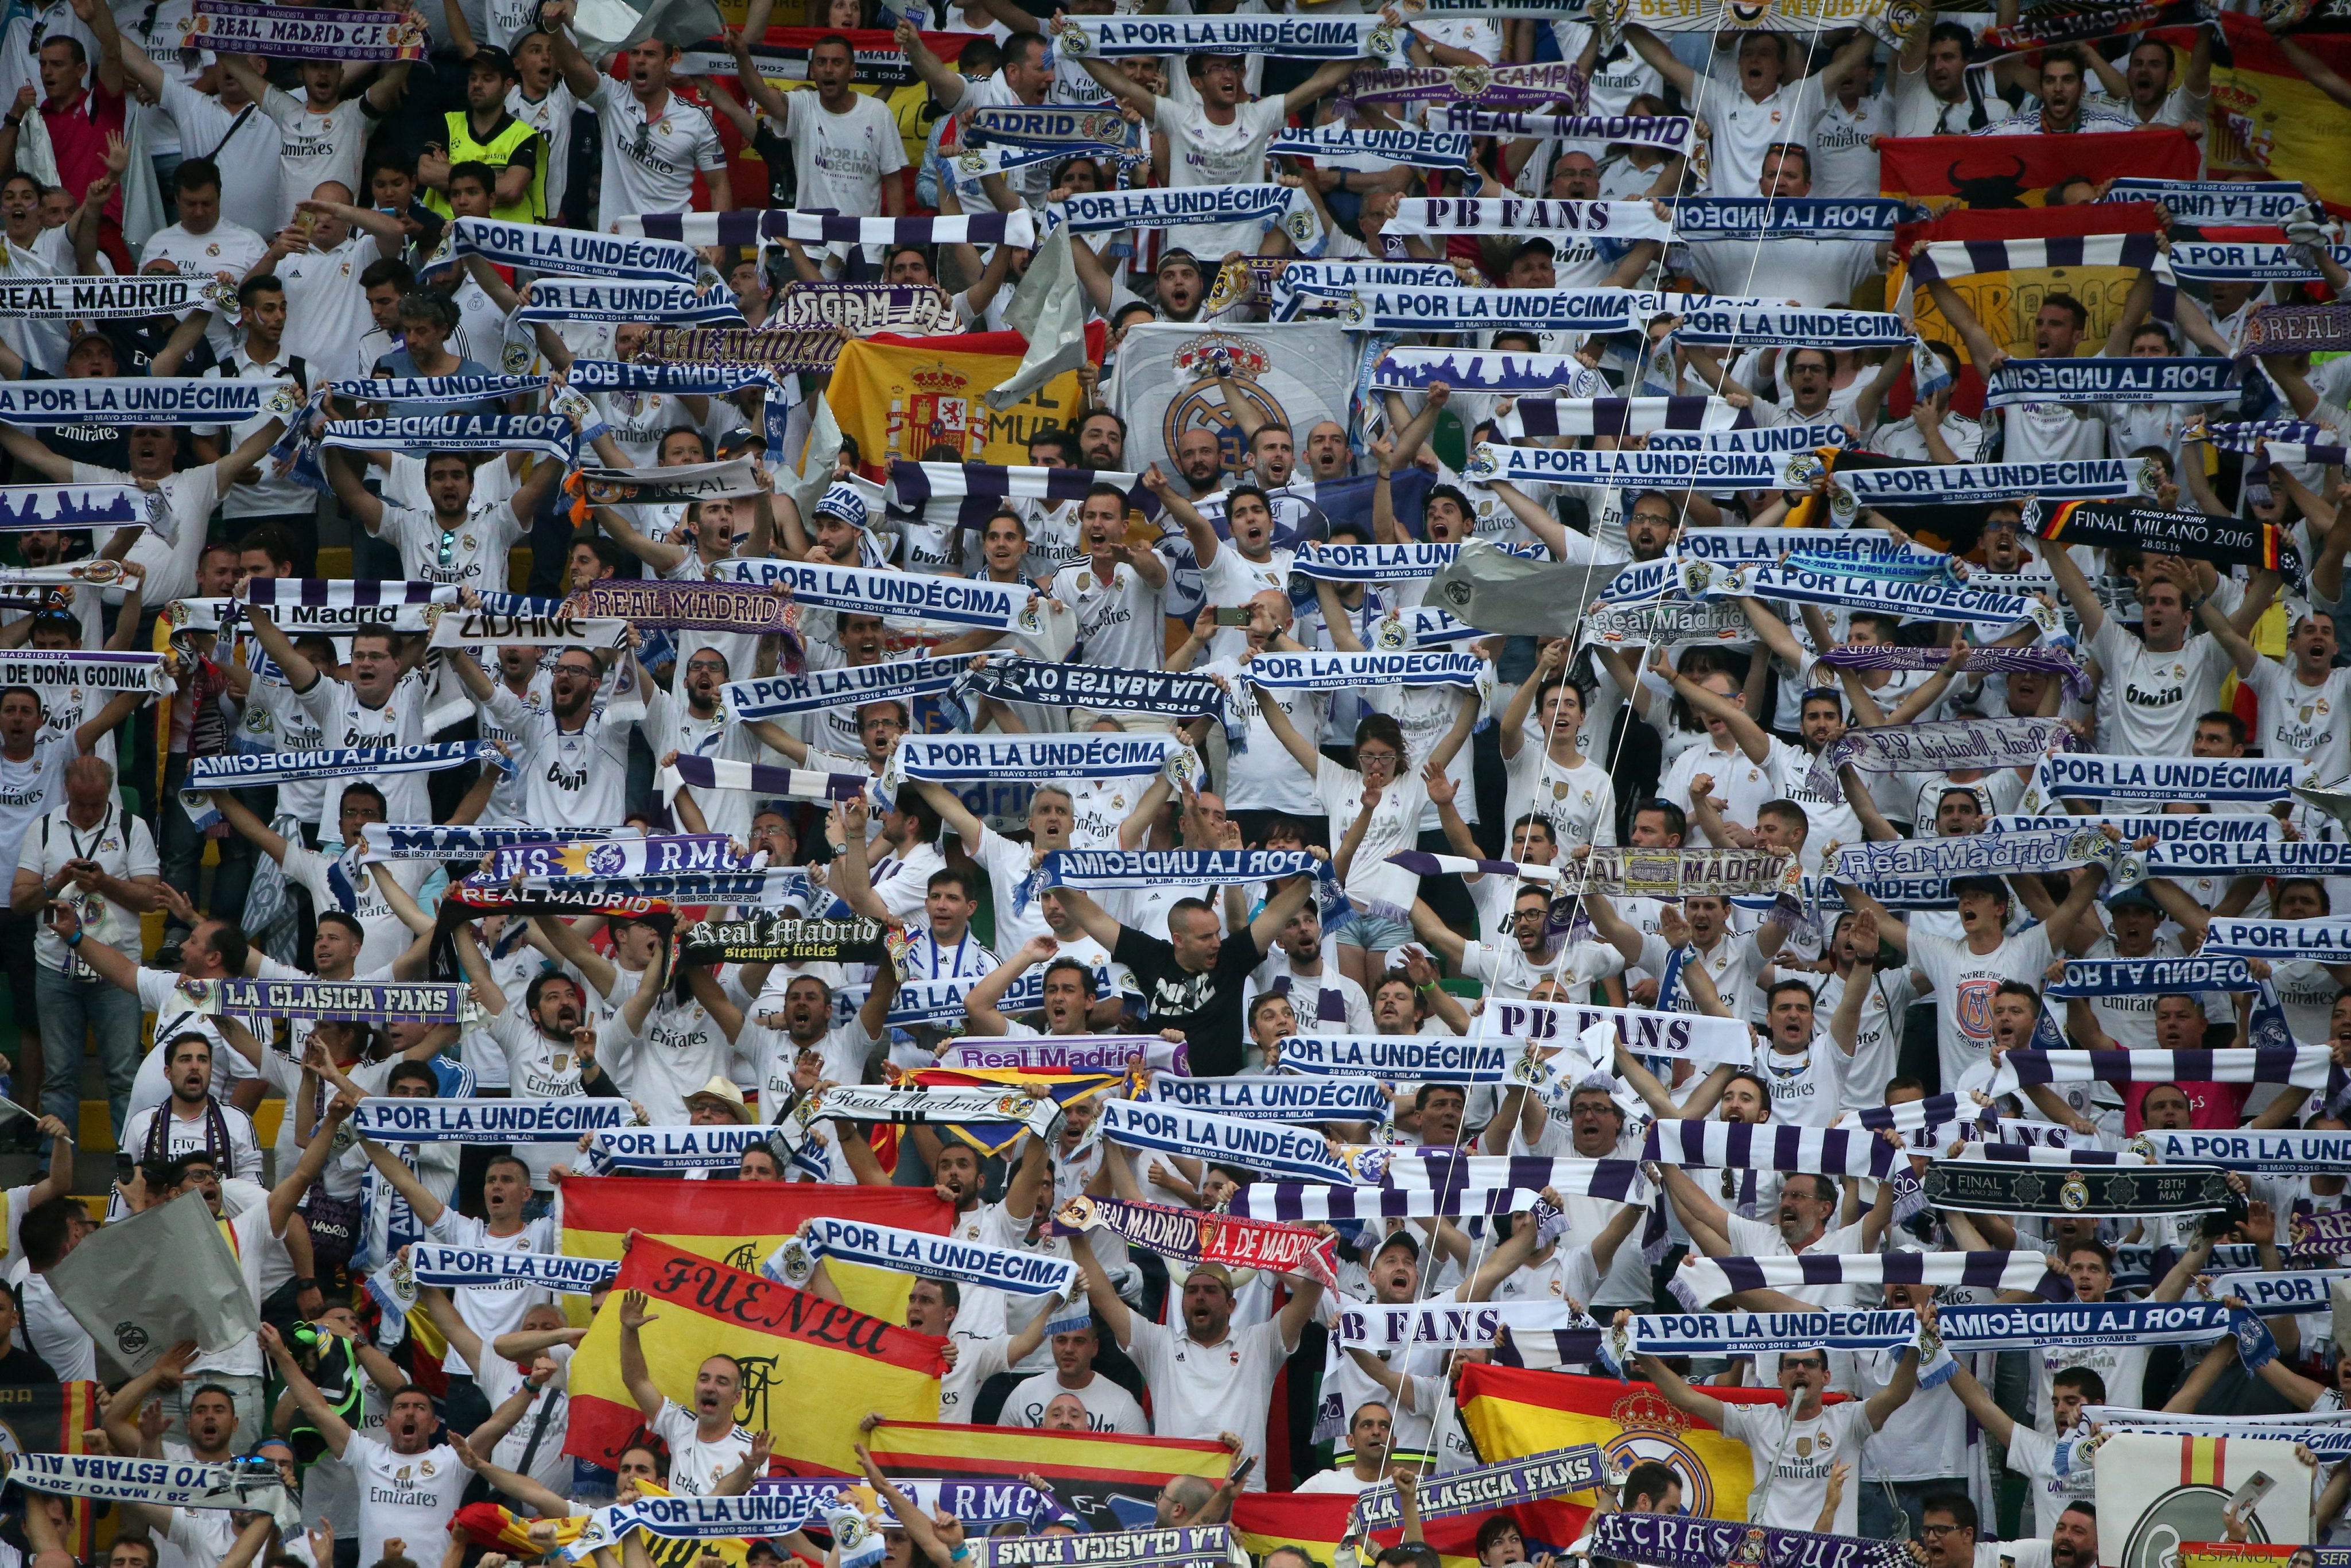 . Milan (Italy), 28/05/2016.- Real Madrid supporters before the UEFA Champions League Final 2016 between Real Madrid and Atletico Madrid at the Giuseppe Meazza stadium in Milan, Italy, 28 May 2016. (Liga de Campeones, Italia) EFE/EPA/OLIVER WEIKEN